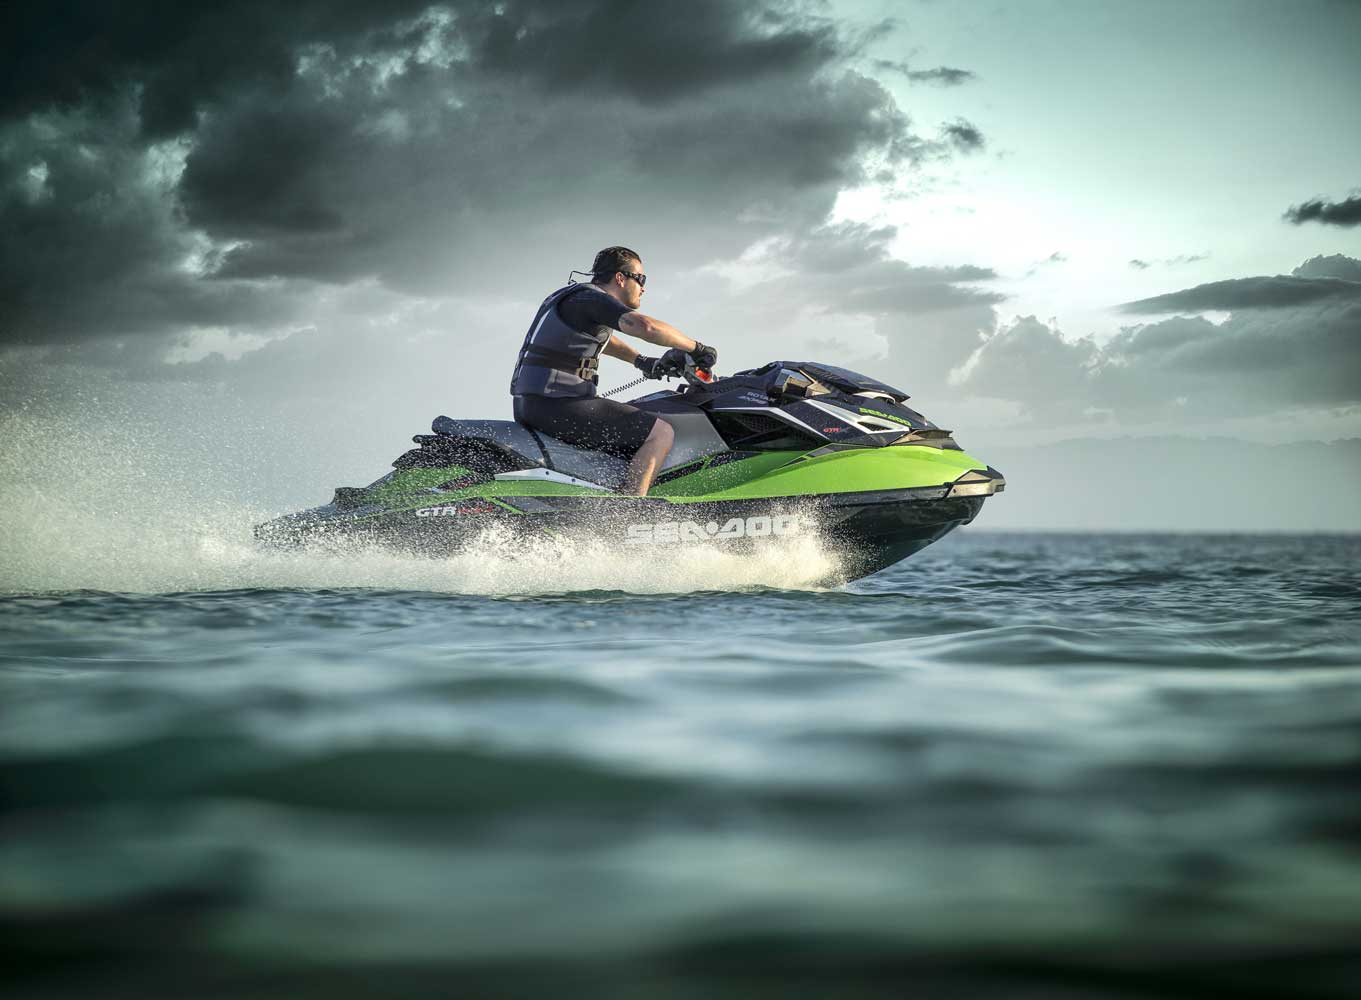 Rent Jet Ski Njivice - Otok Krk